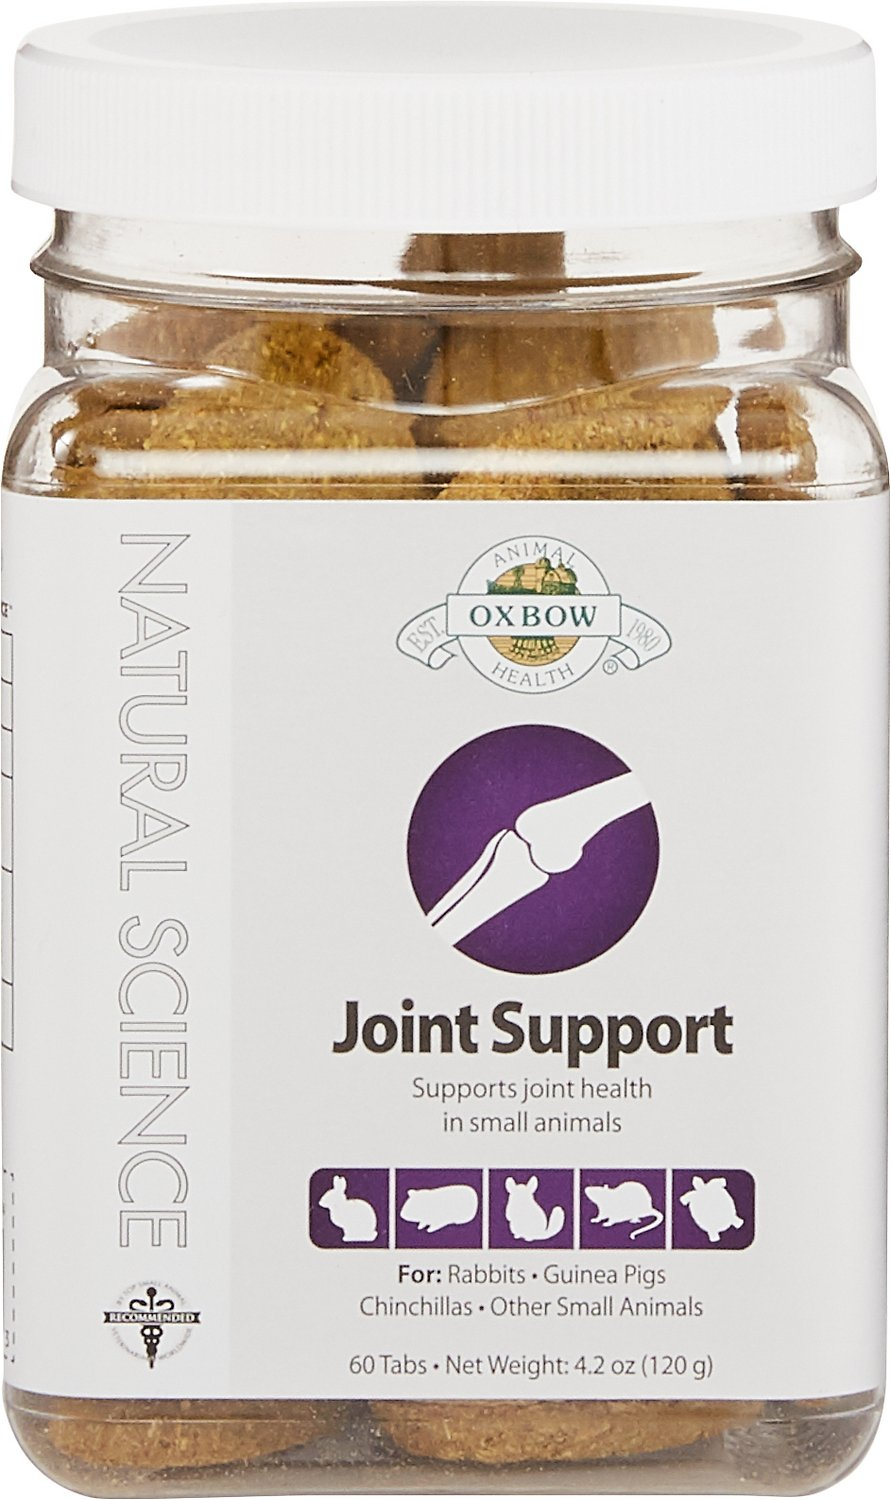 Oxbow Natural Science Joint Support Small Animal Supplement, 60 count Image